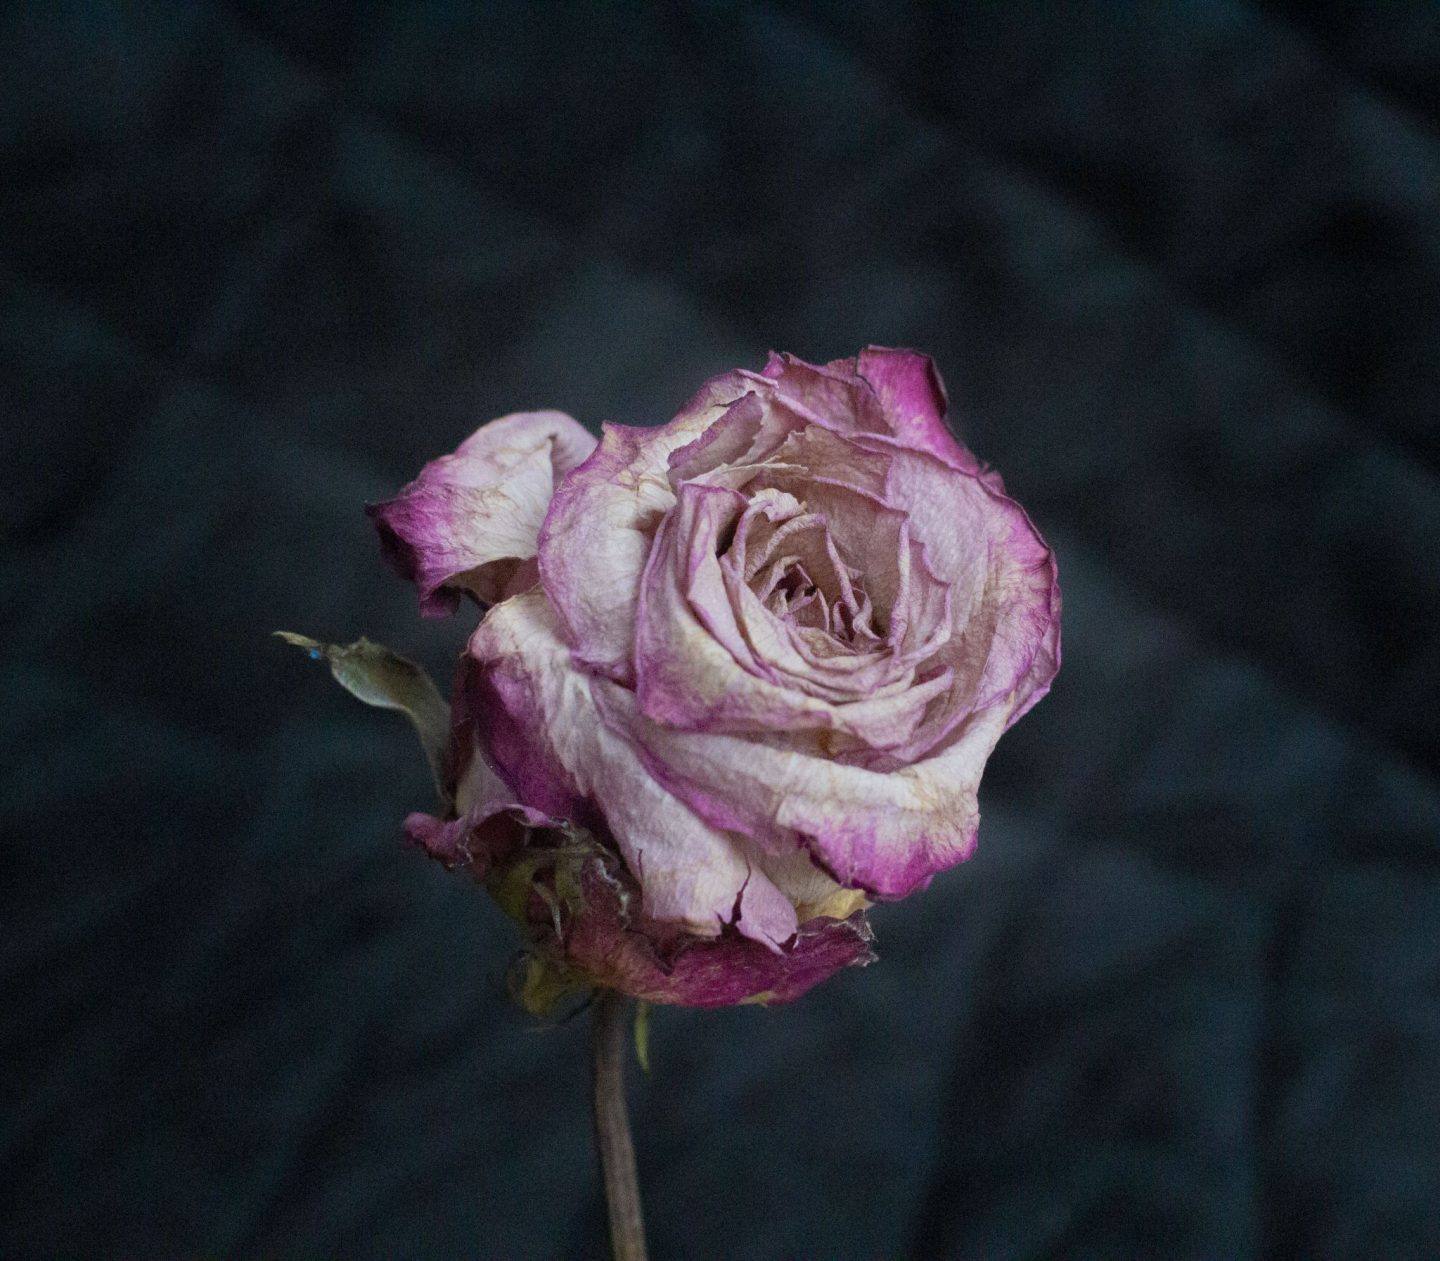 photography challenge, photography inspiration, photo ideas, photography ideas, faded rose, old rose, dried rose, dadbloguk uk dad blog, dad blog, photographer. photo blog